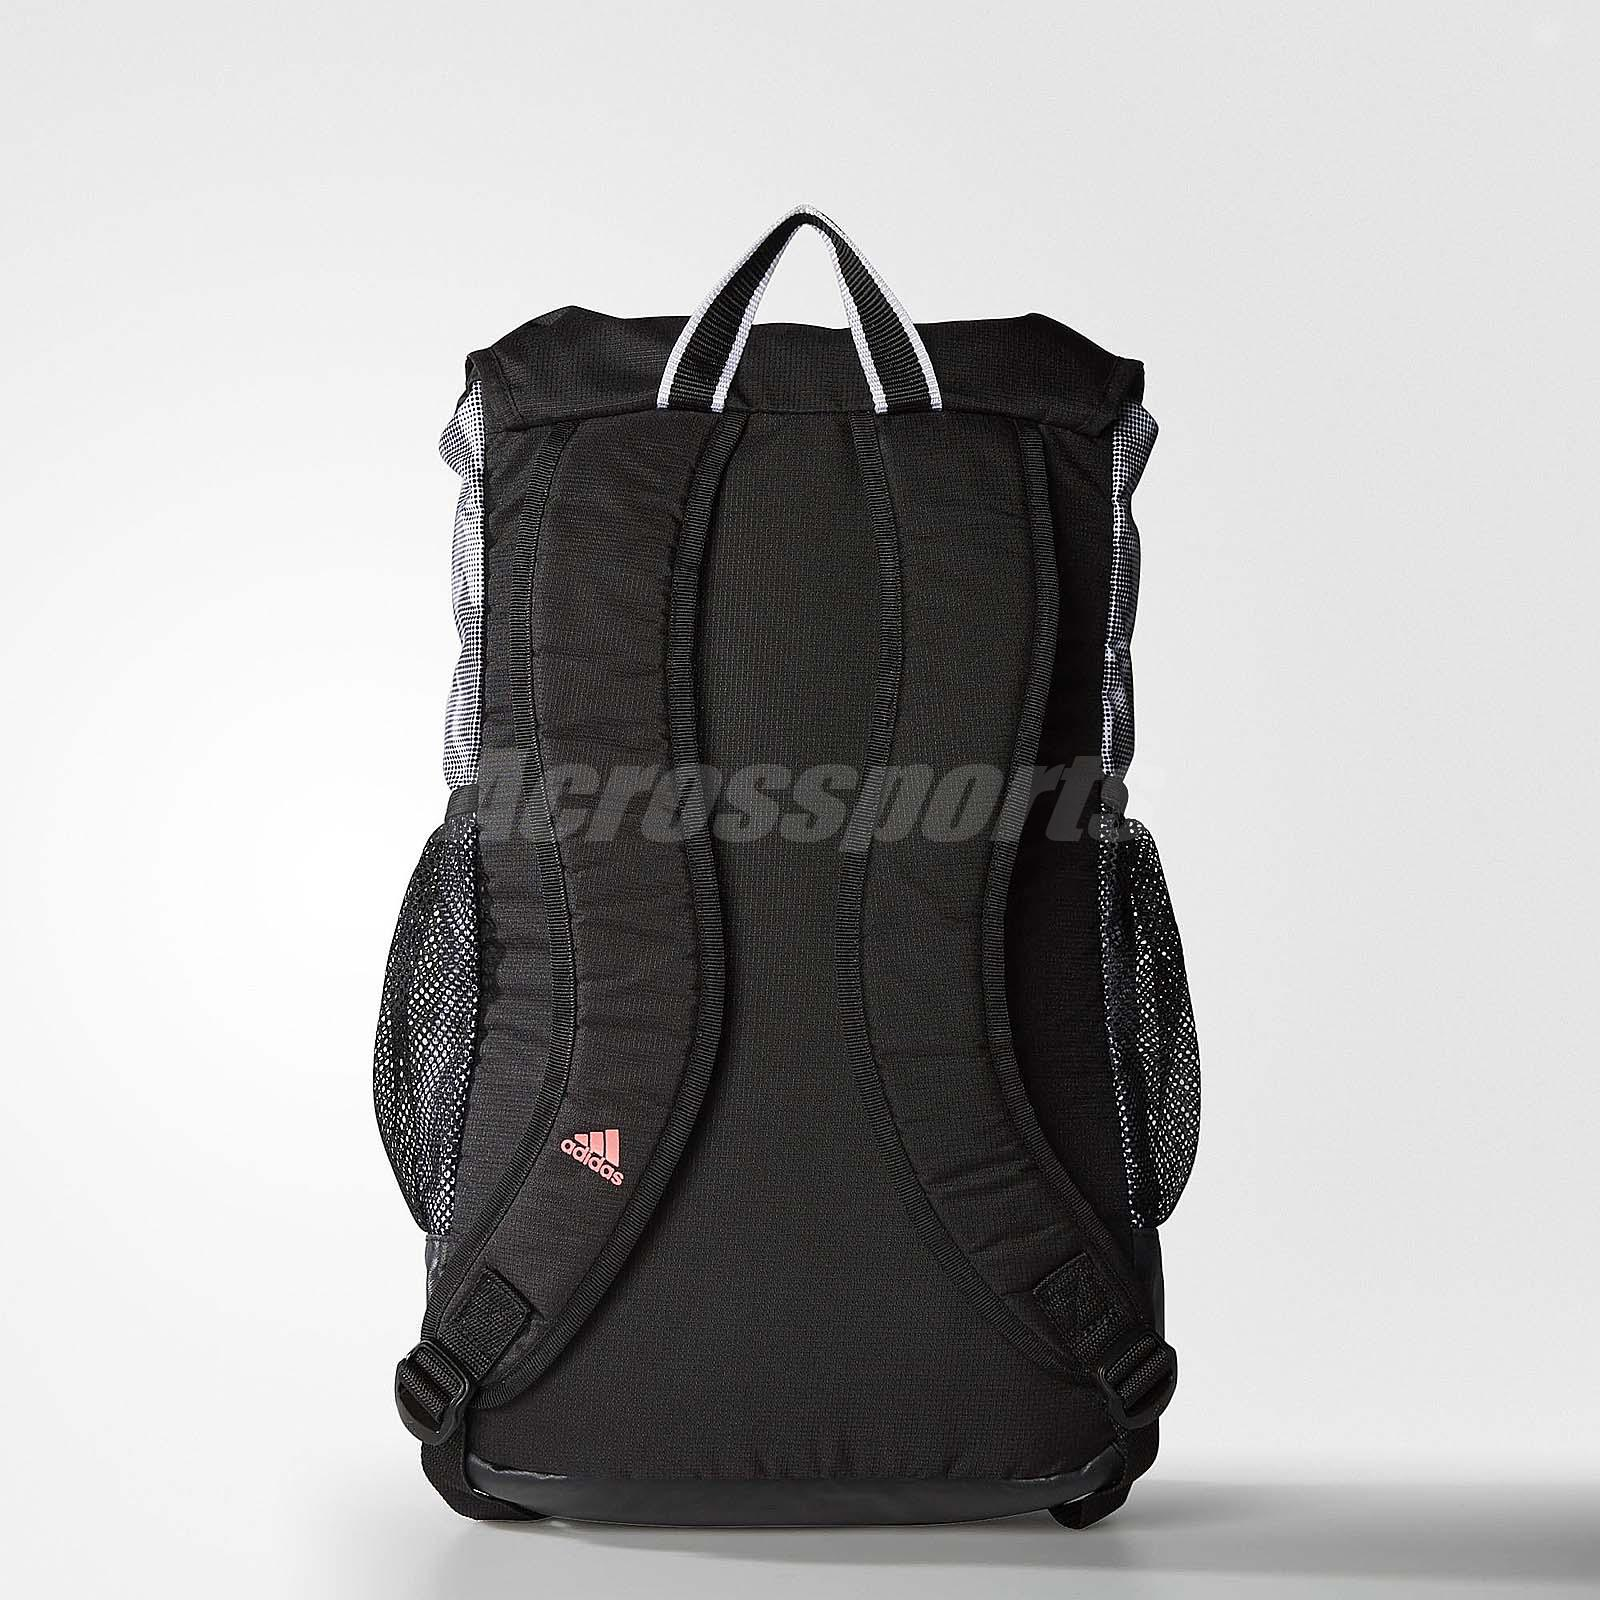 Buy black and red adidas backpack   OFF67% Discounted 625861600e703